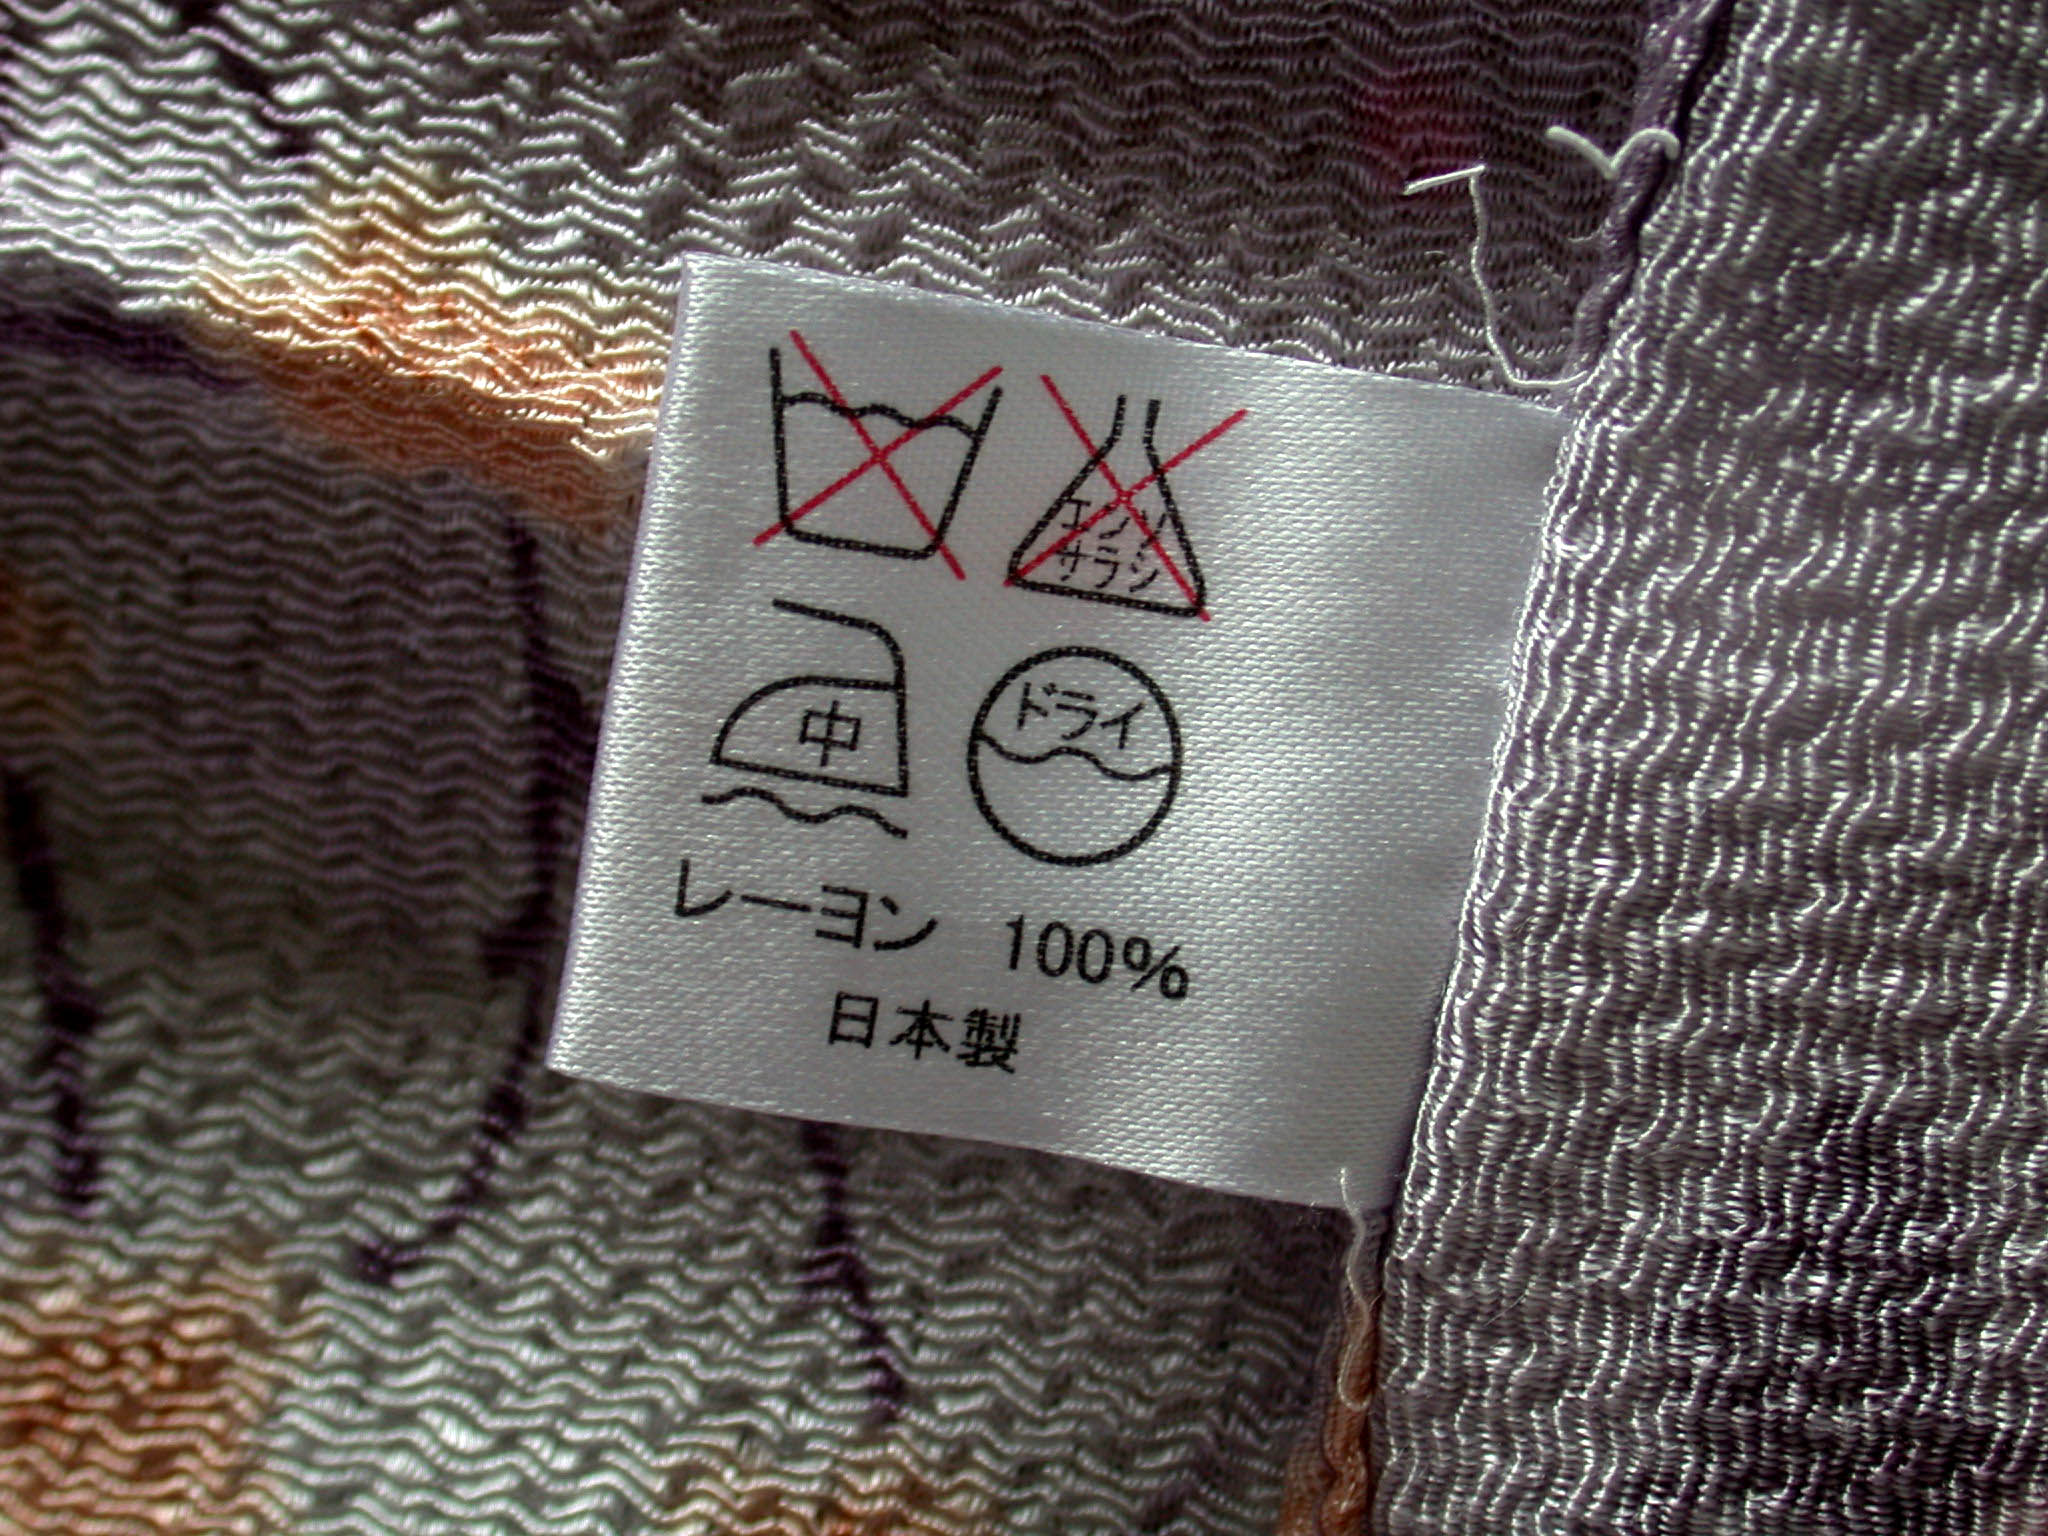 Laundry symbol wikipedia laundry care symbols with instructions in japanese the four symbols shown indicate that the garment must not be washed in water must not be bleached biocorpaavc Gallery